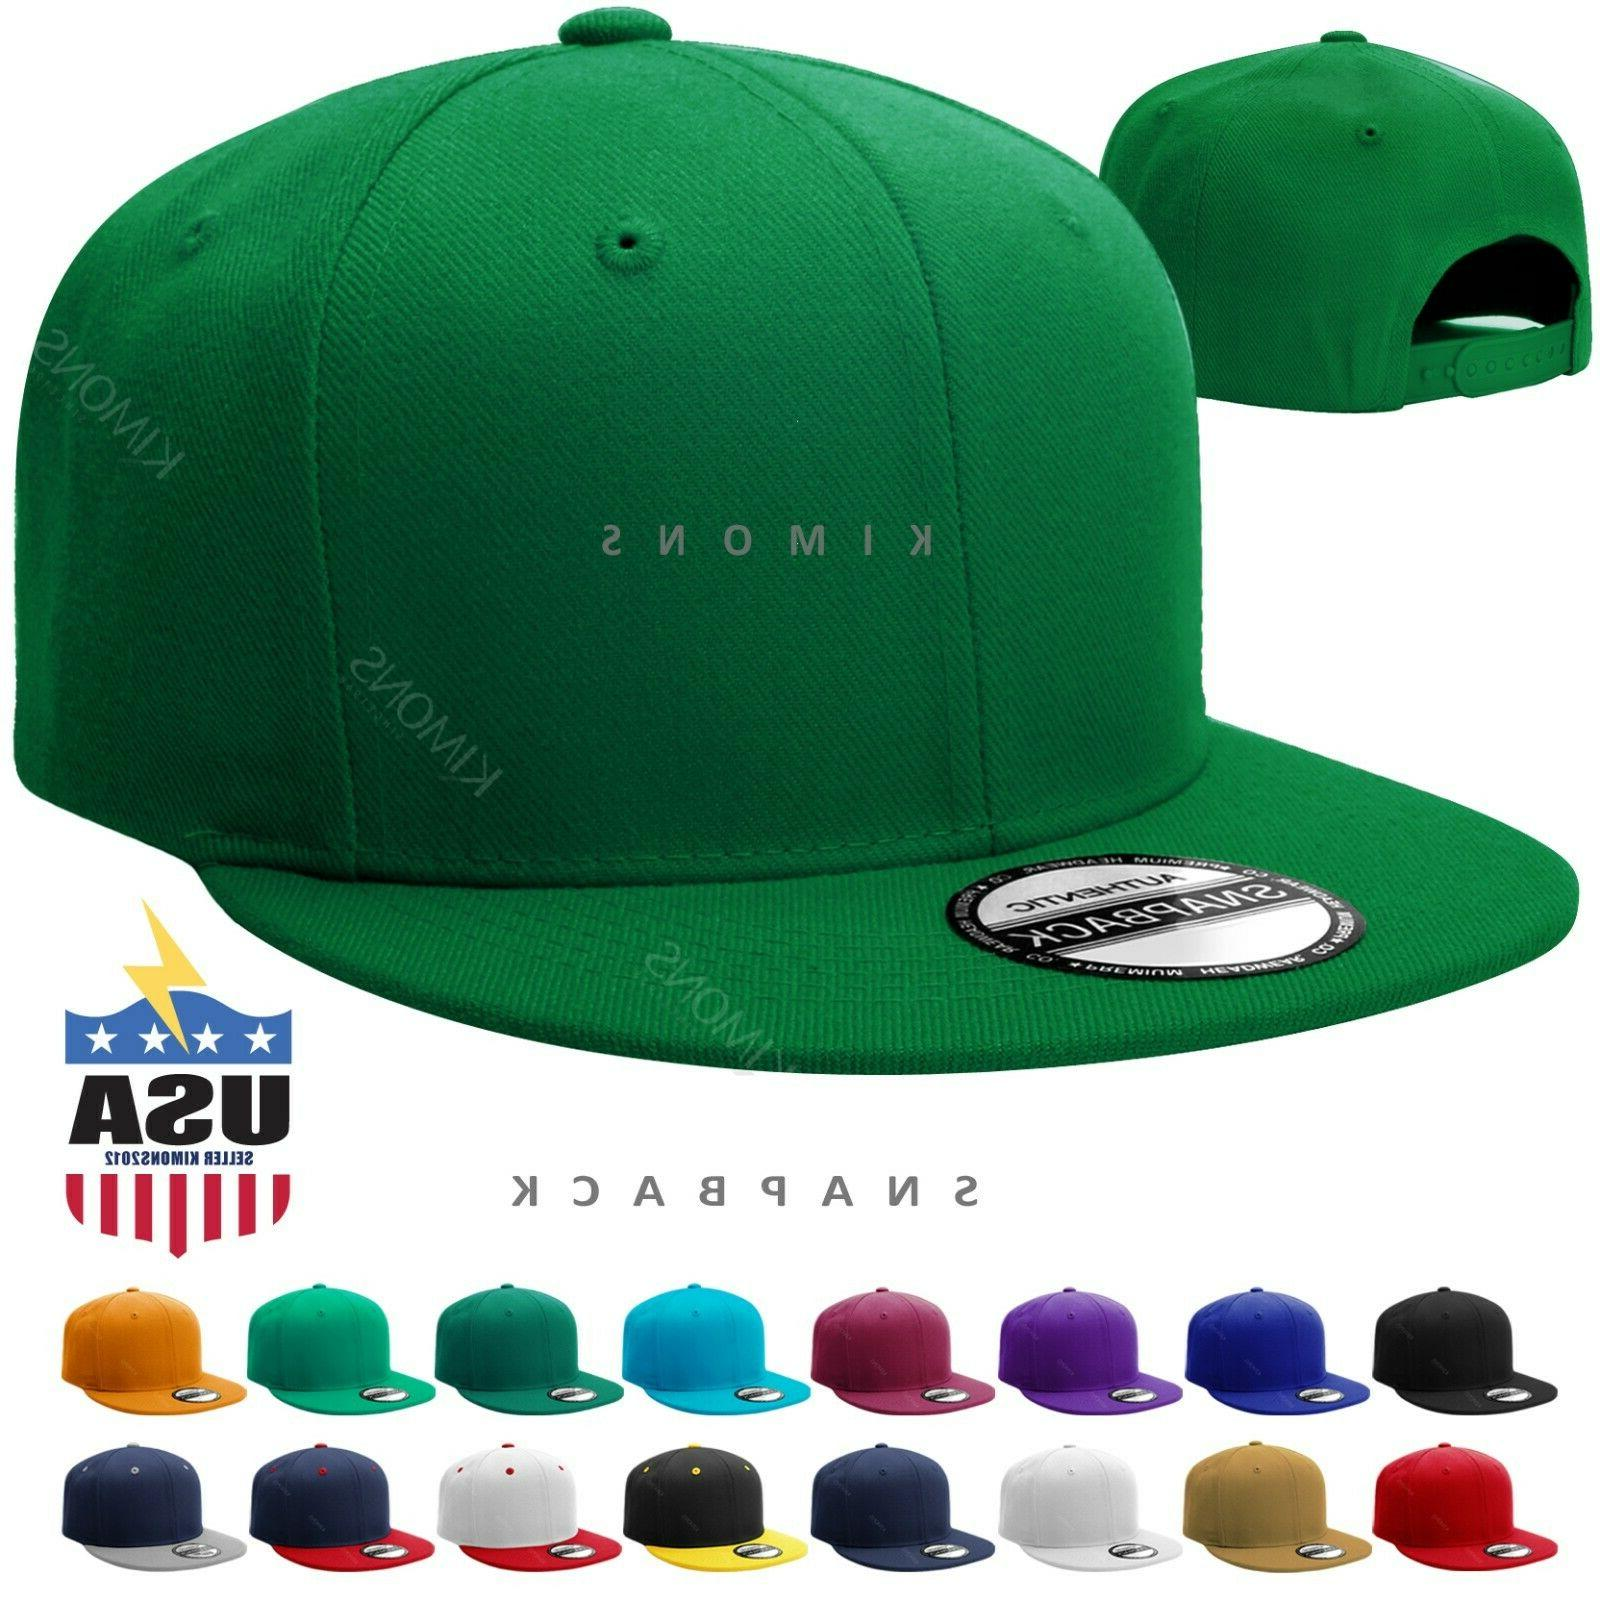 snapback hat classic hip hop style flat